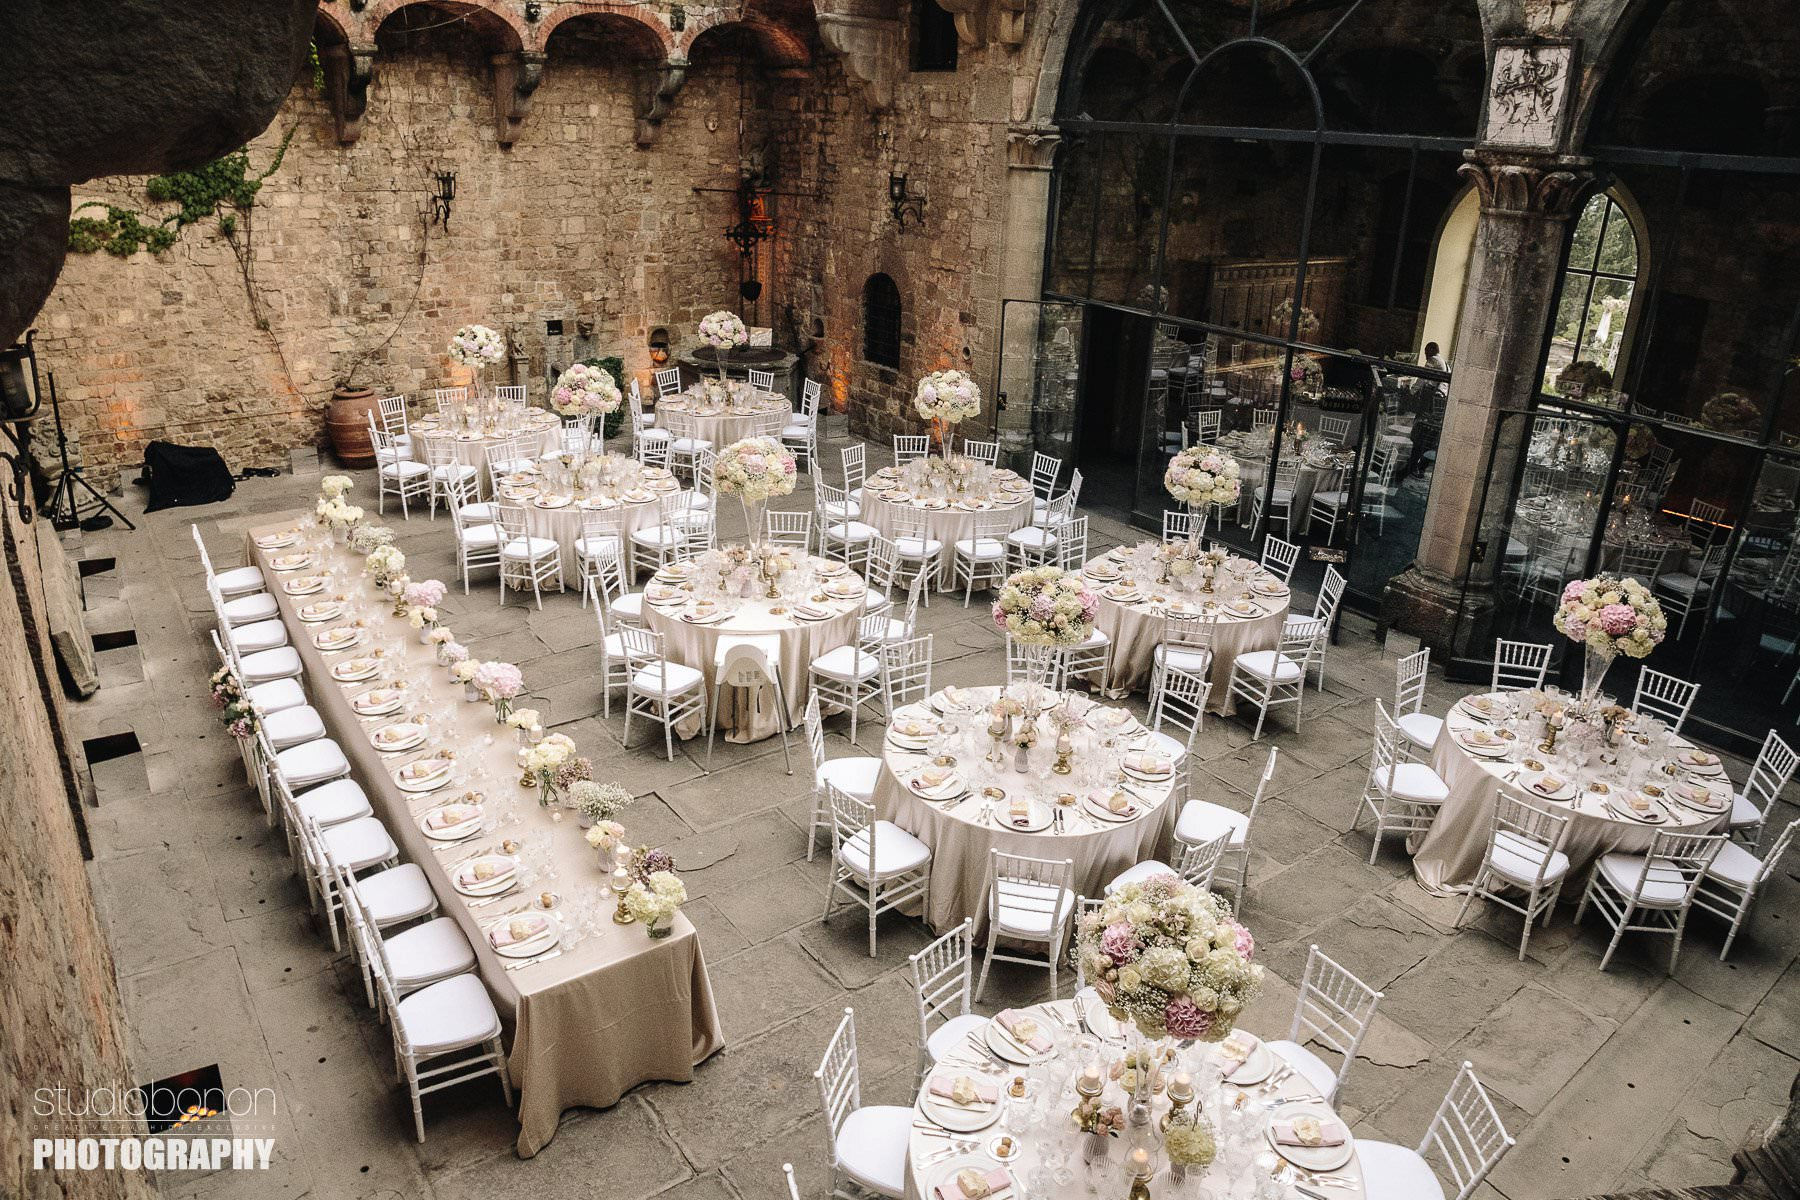 Luxury and elegant dinner decor at Vincigliata Castle, Florence countryside